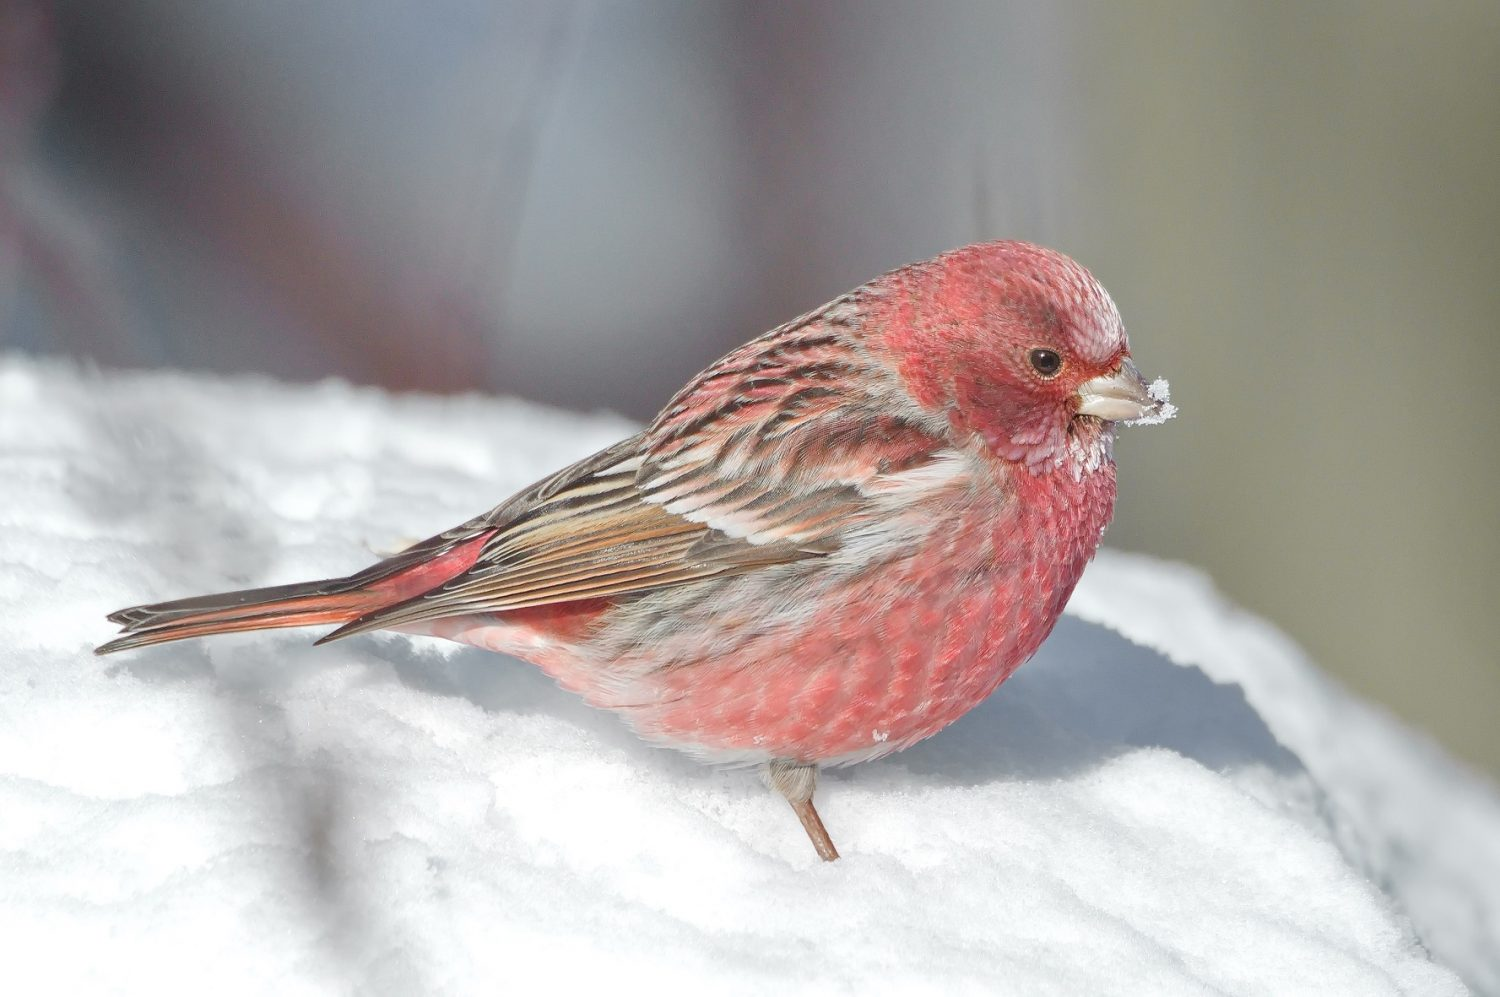 pink rosefinches catches the attention of the internet worldwide